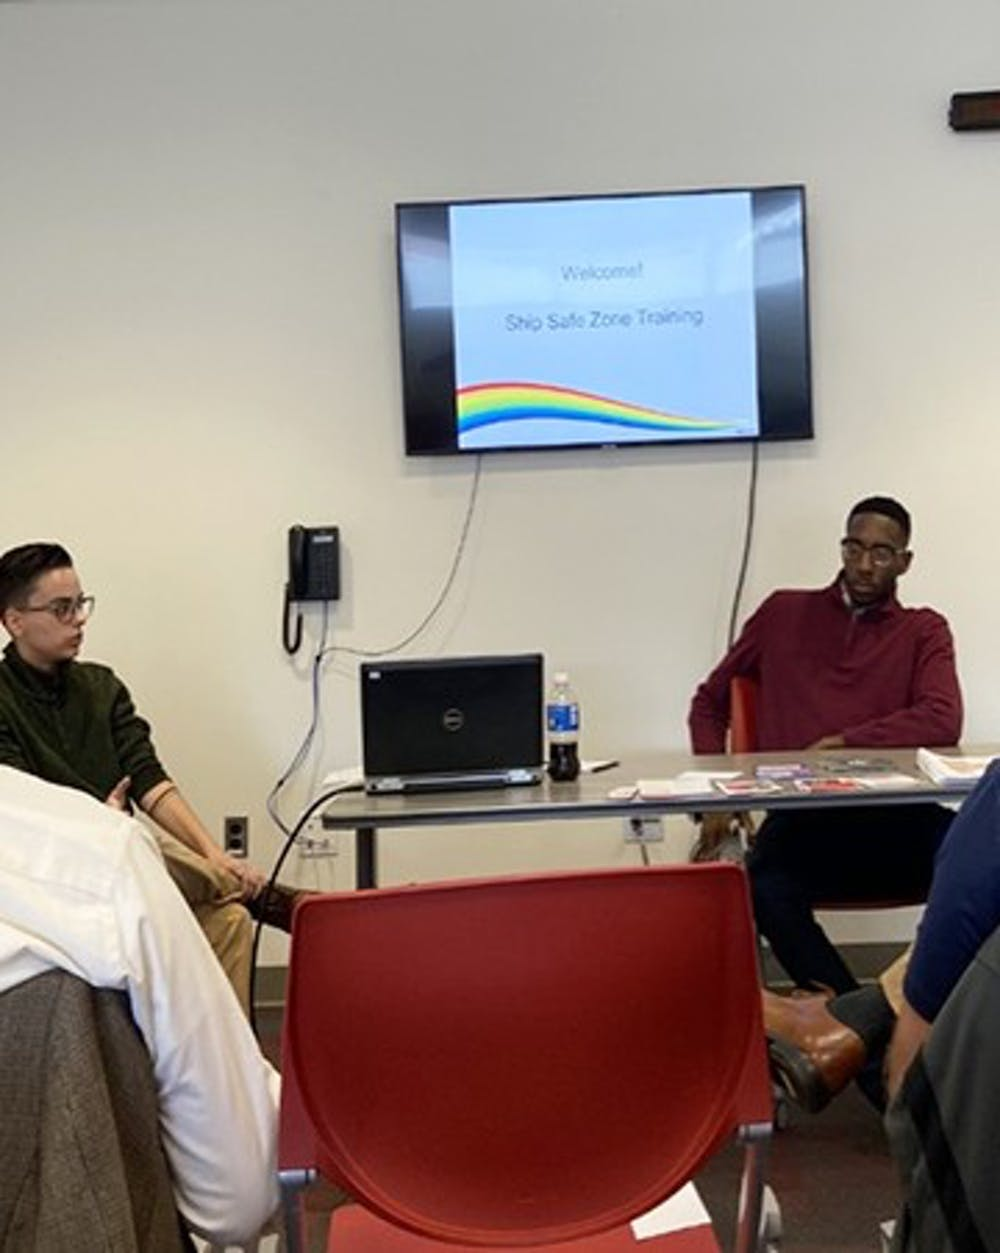 Shippensburg University Pride Center holds 'safe zone' training to educate on LGBTQ+ issues, terminology